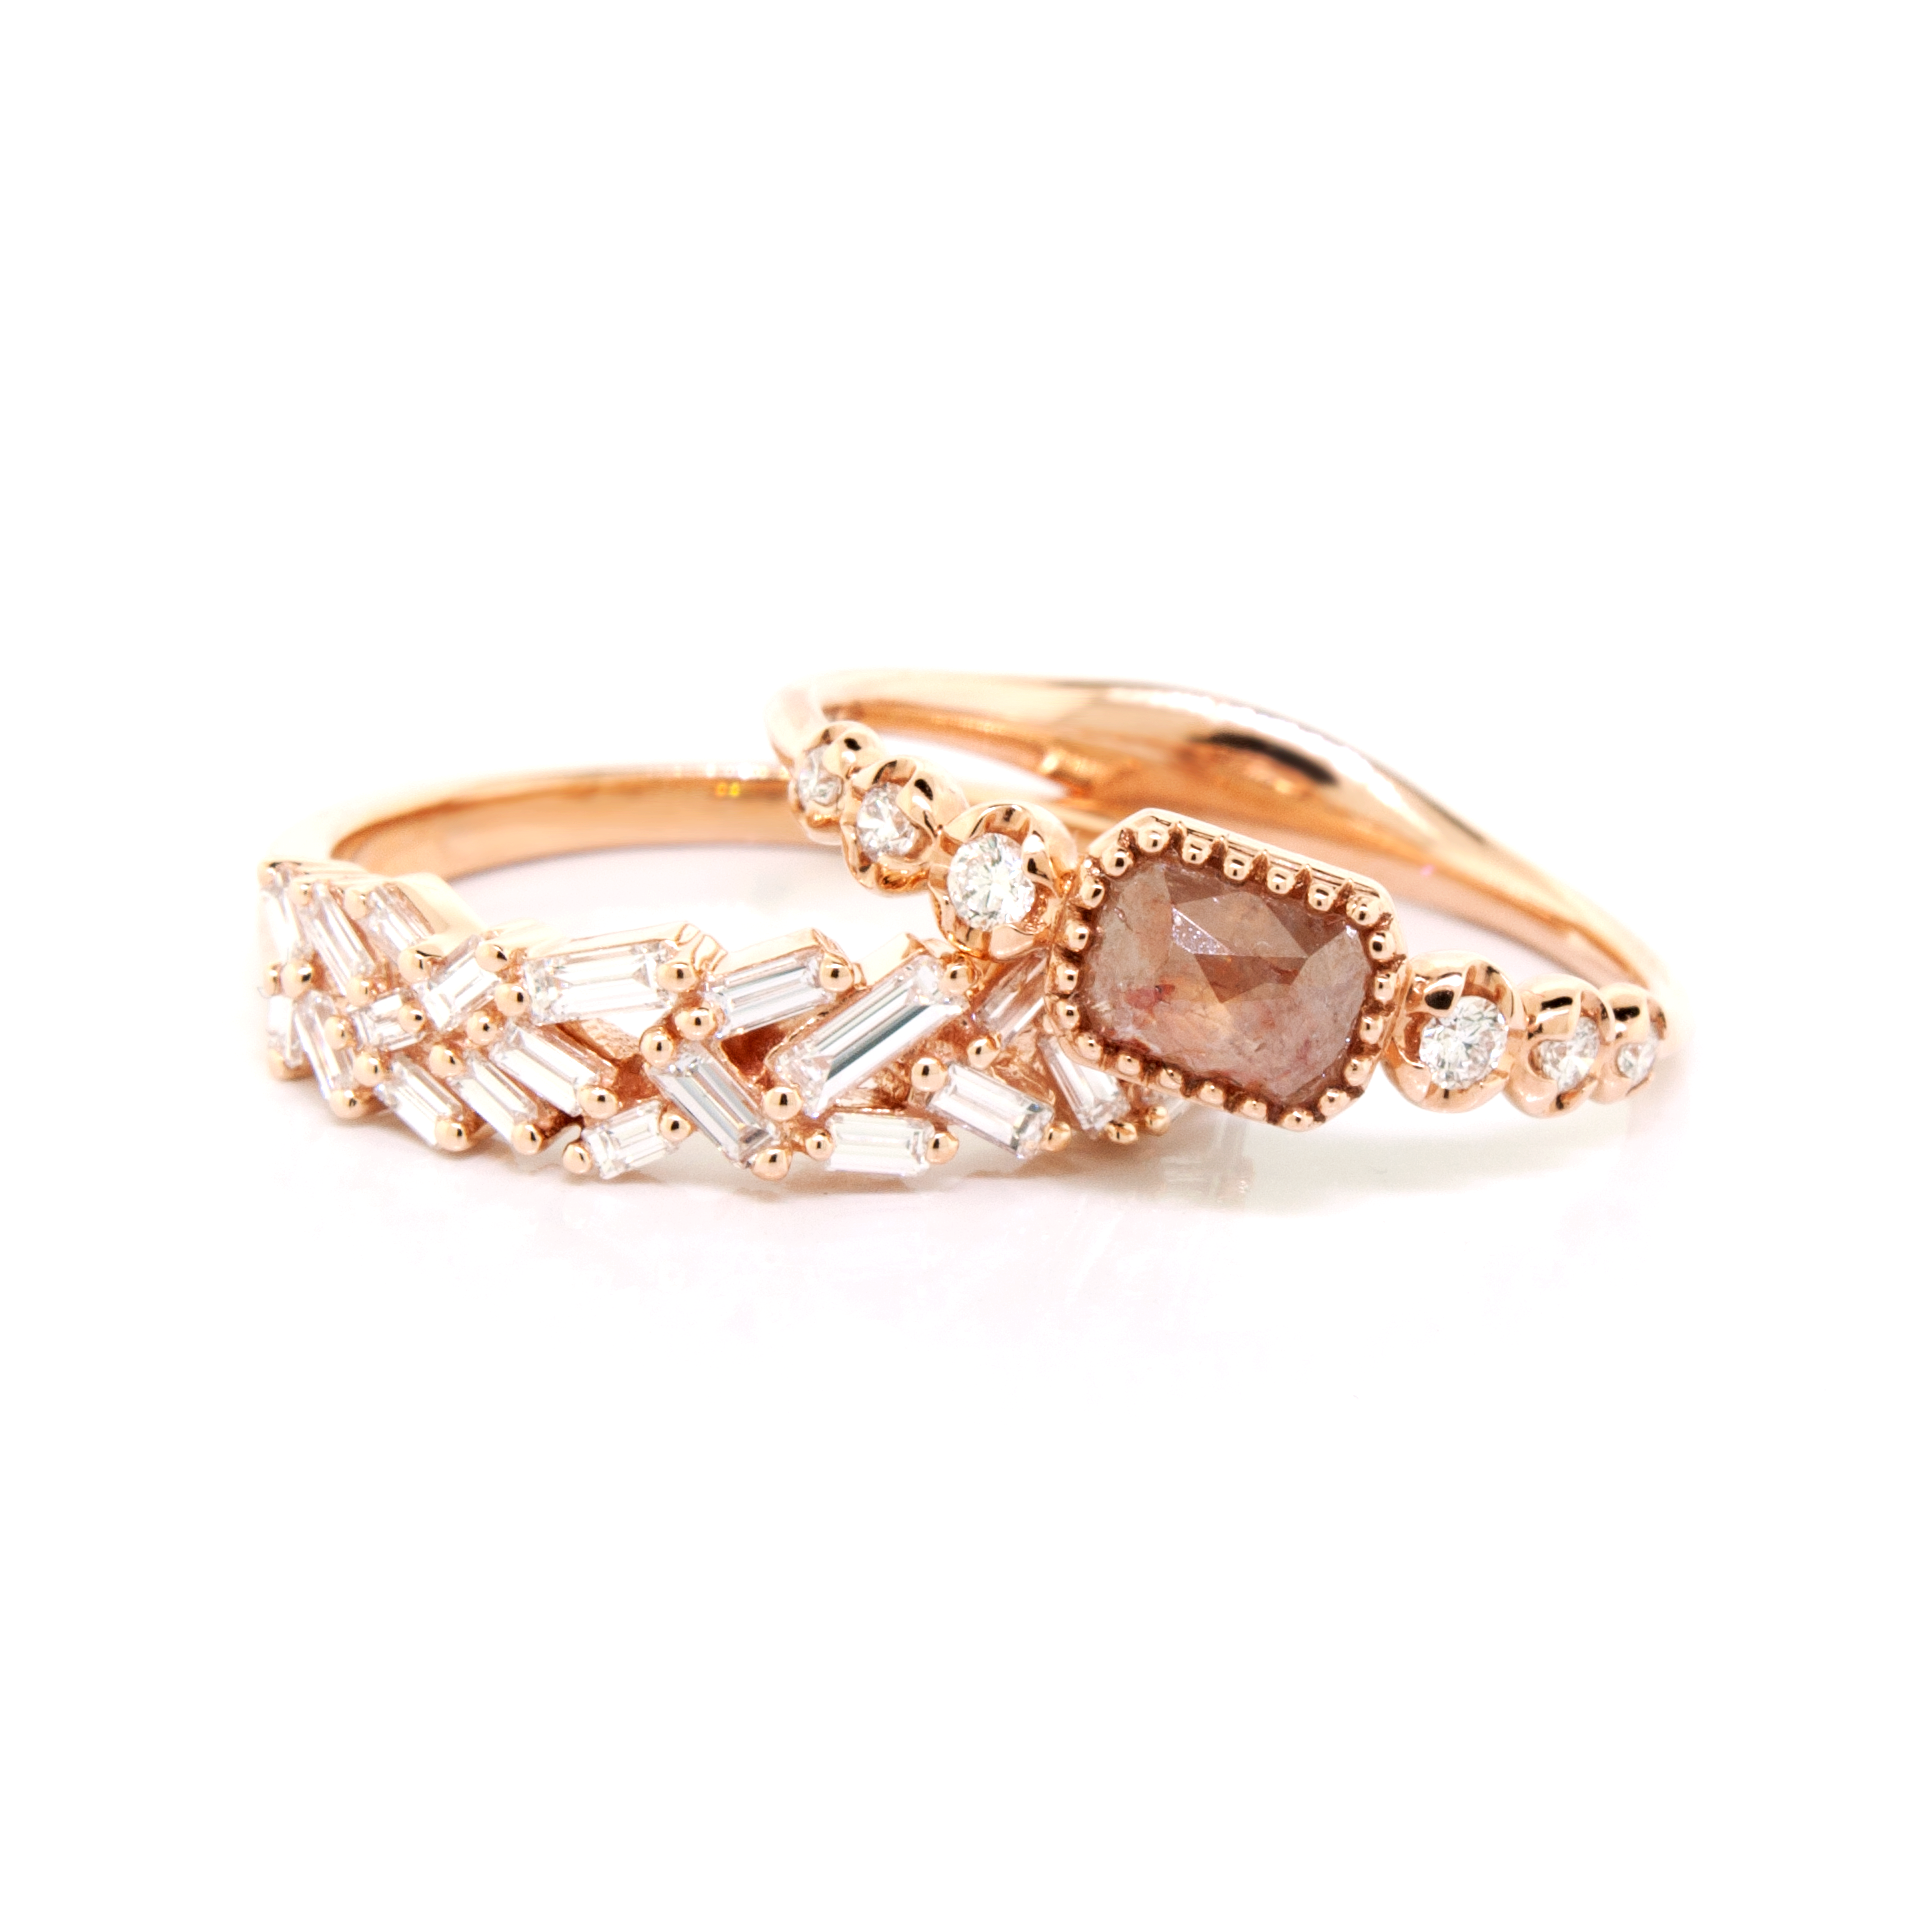 Scattered Baguette Diamond Ring - available on special order